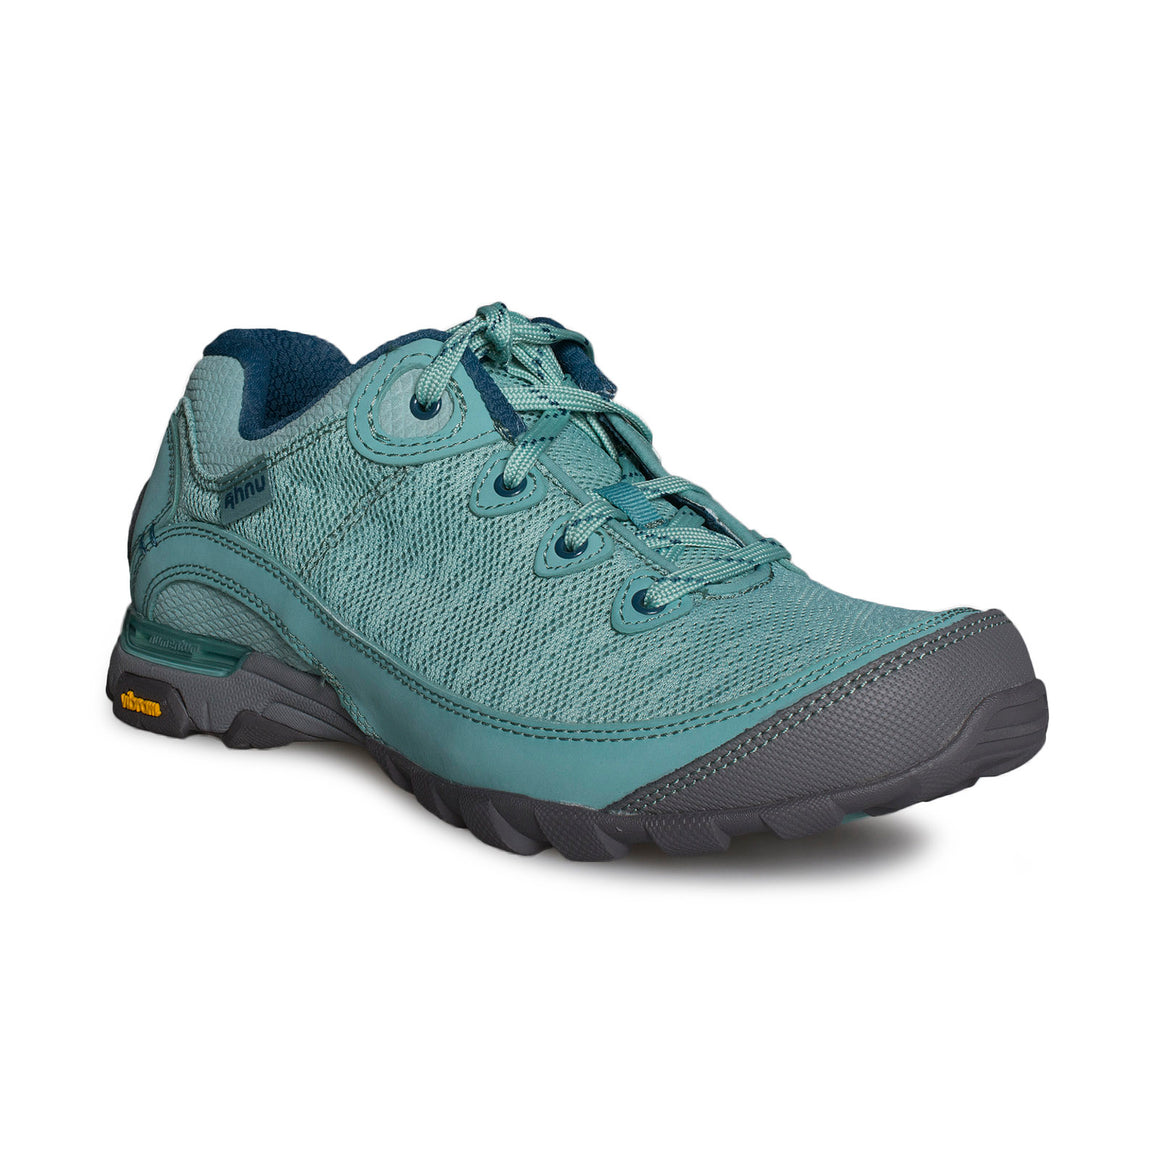 Ahnu Sugarpine II Air Mesh Lagoon Shoes - Women's